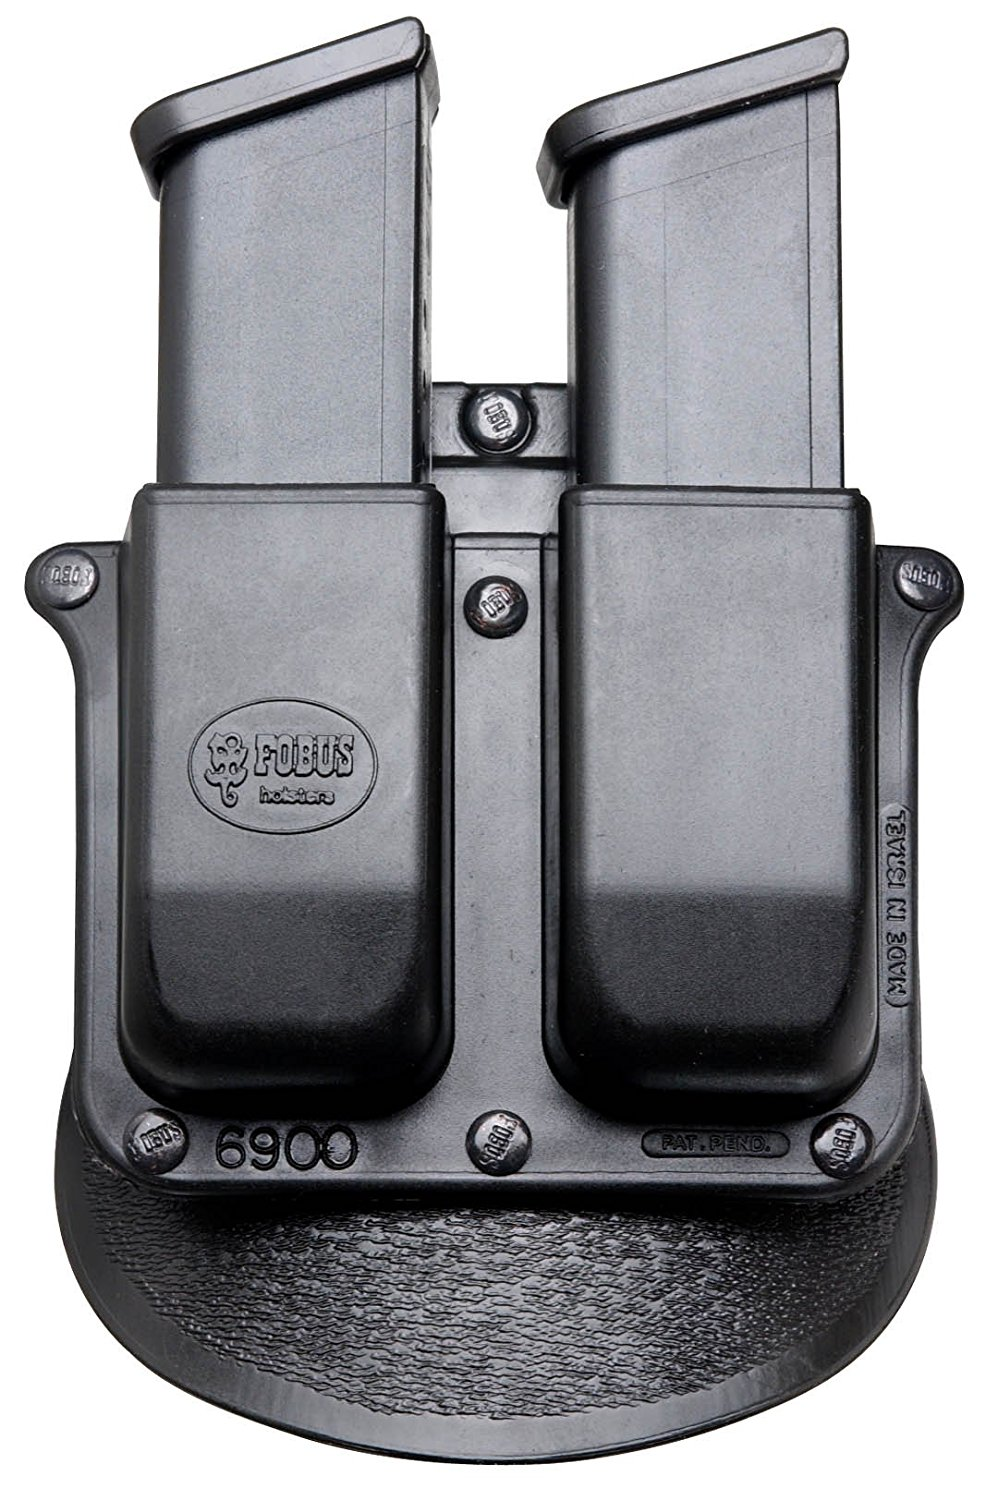 Roto Paddle 6900RP Double Mag Pouch Glock 9& 40, H&K 9&40, Pouch 45 10mm45acp 4500RP Paddle HK 9mm40 20213738 Combo... by